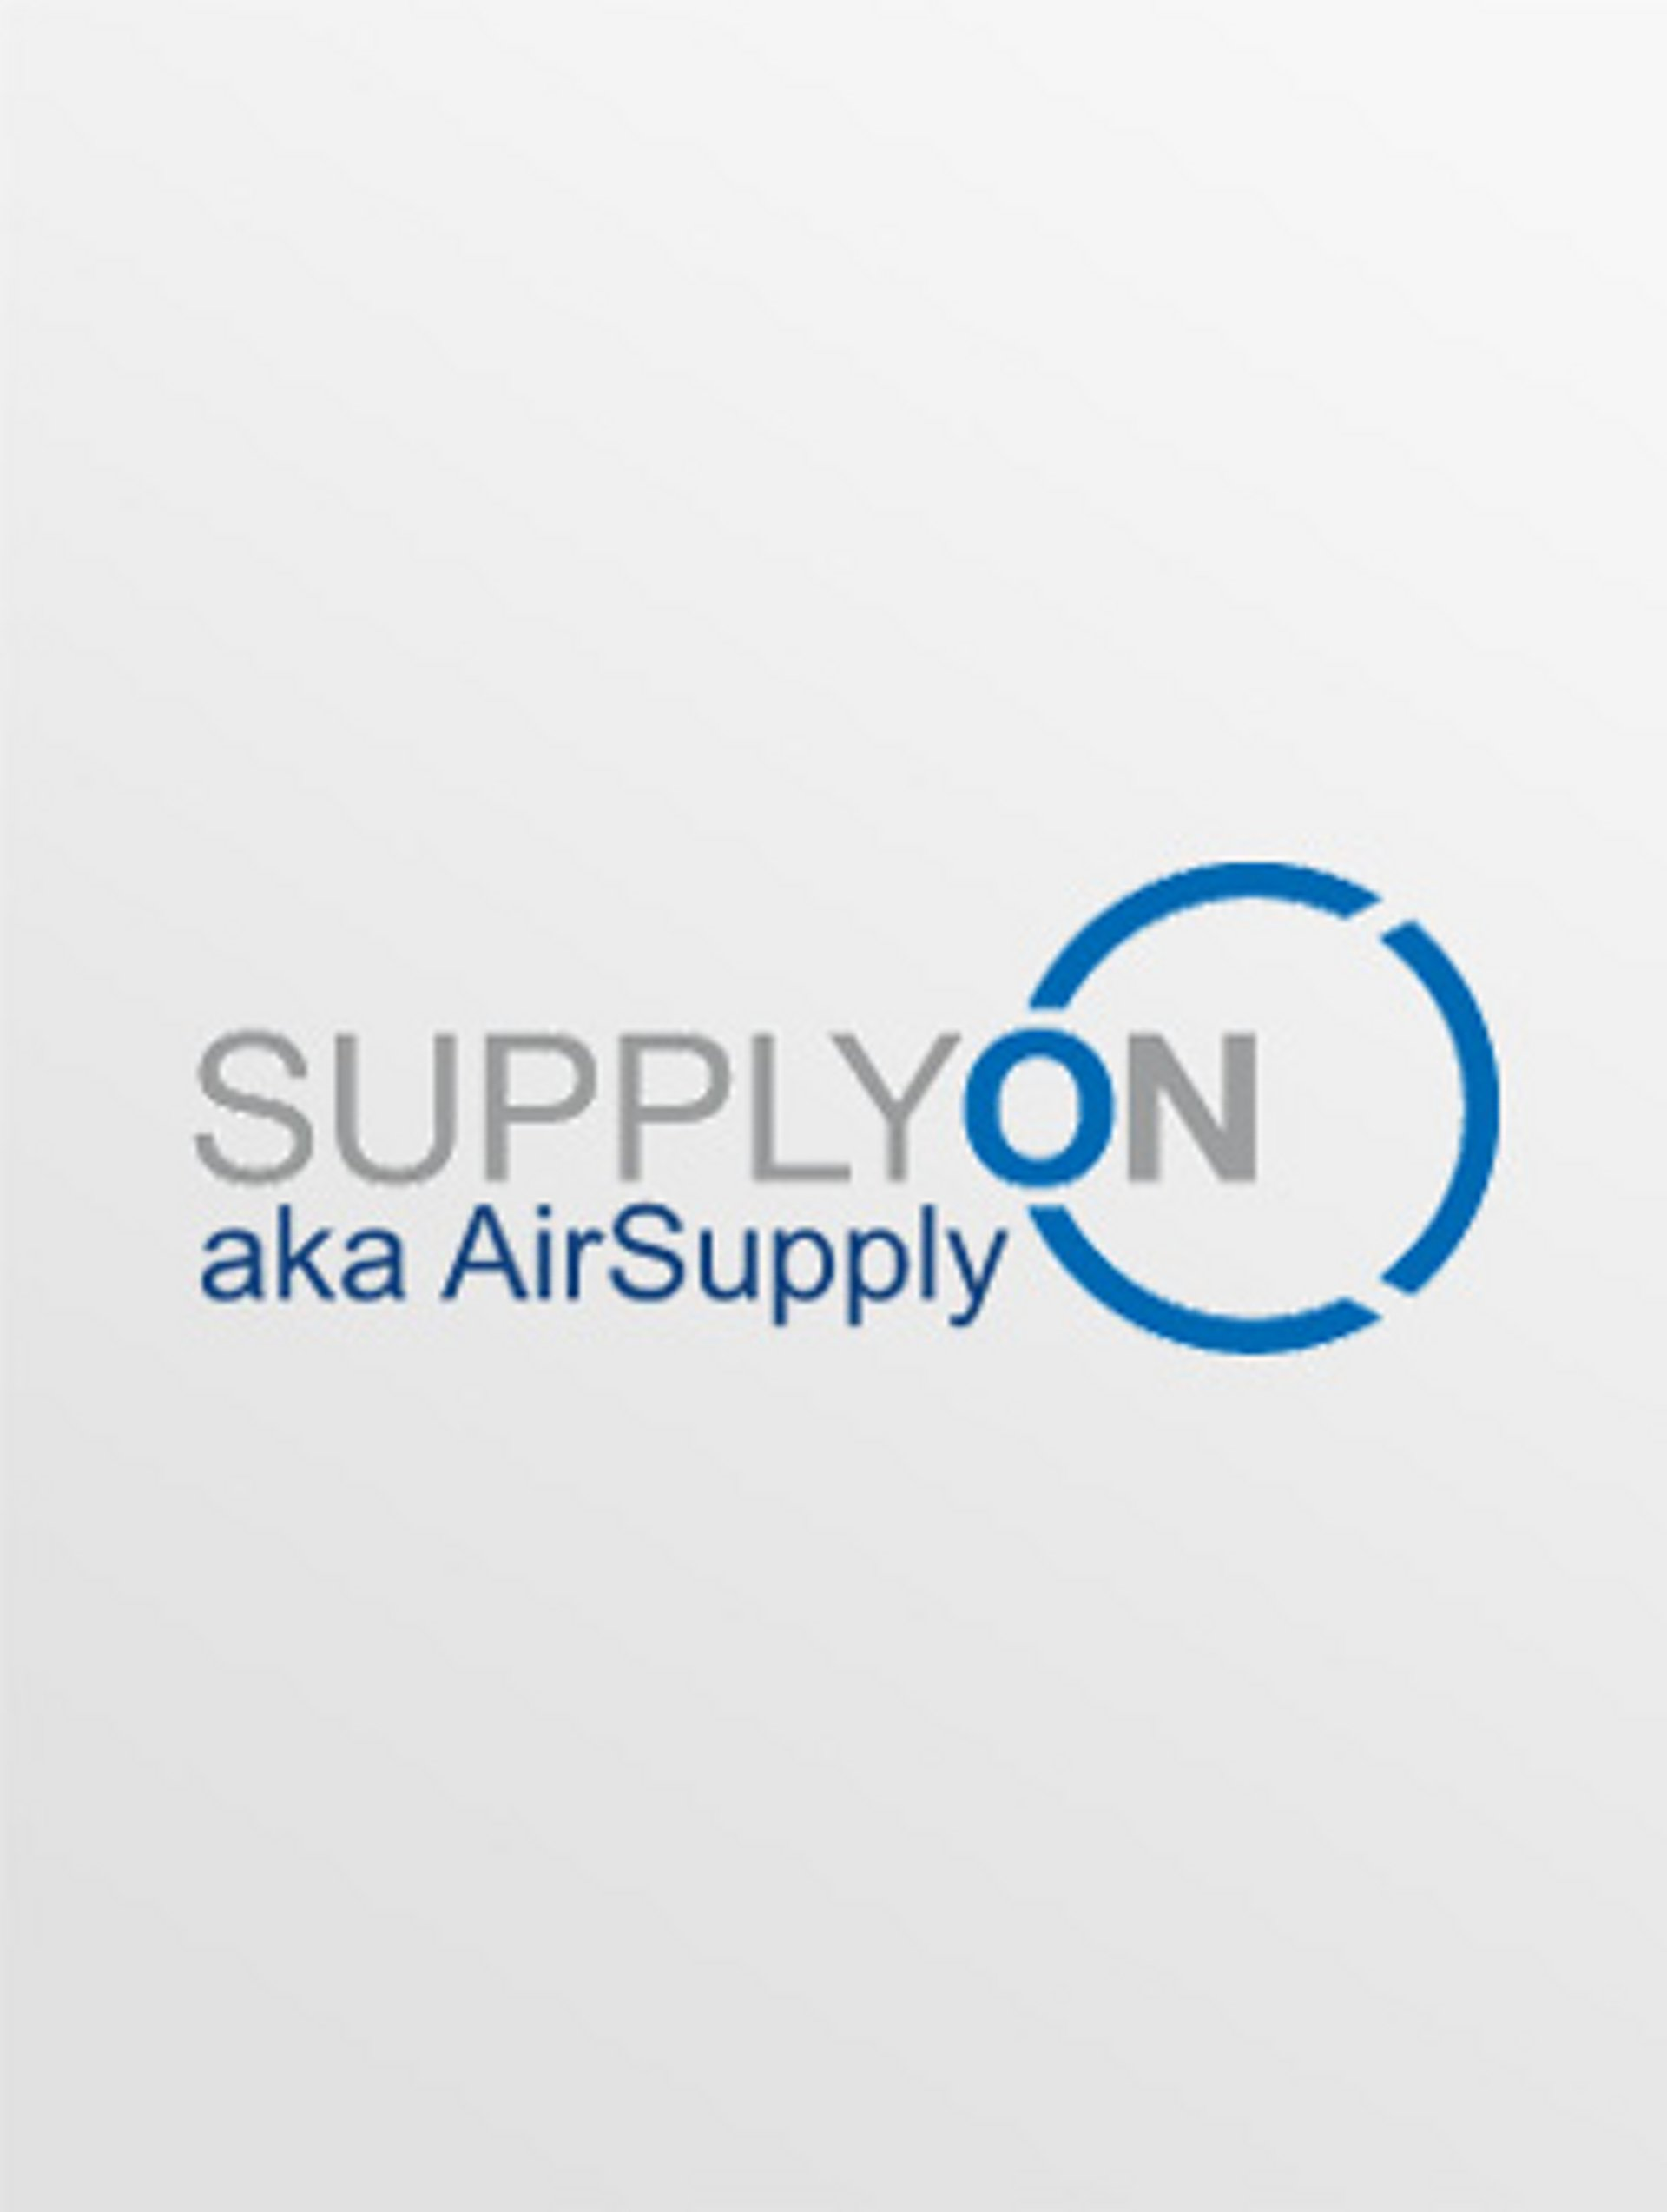 Be an Airbus Supplier - Airbus